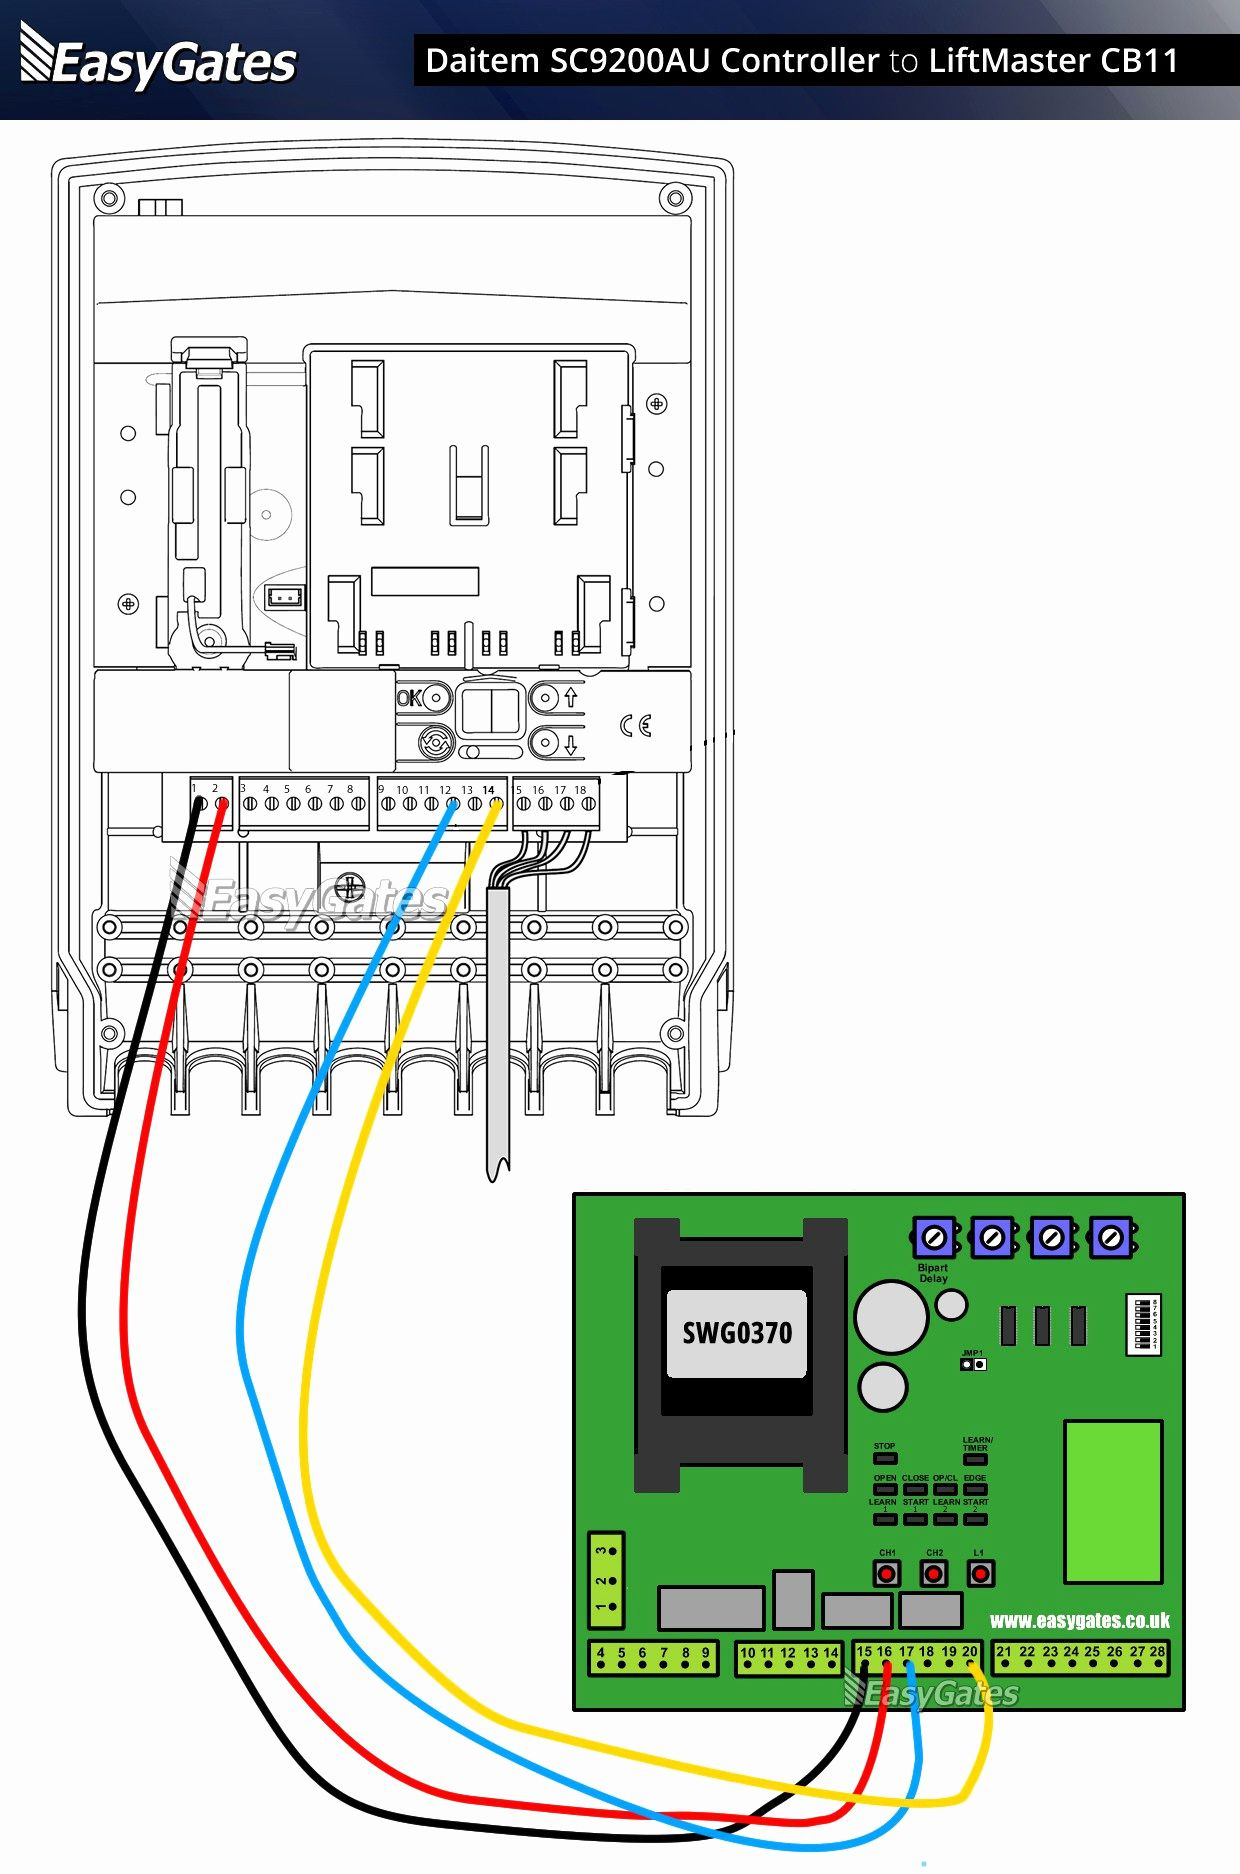 Chamberlain Whisper Drive Garage Door Opener Wiring Diagram | Manual - Chamberlain Garage Door Sensor Wiring Diagram